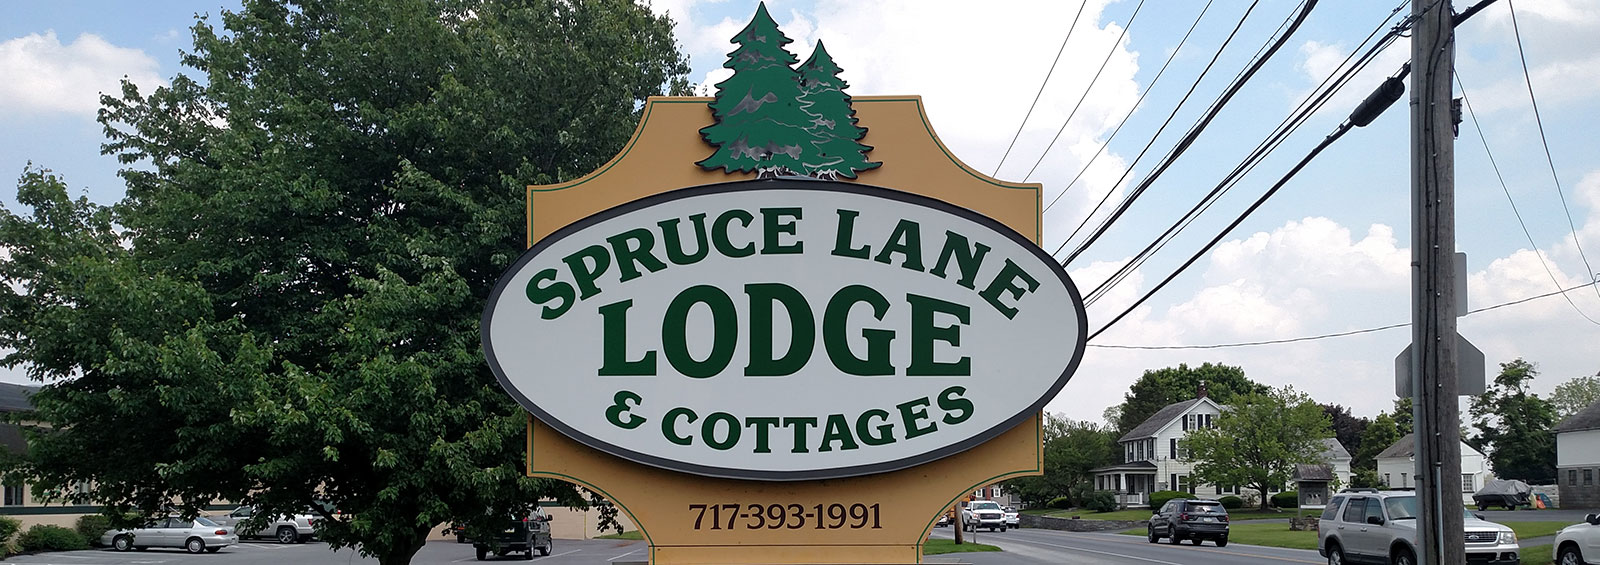 Lancaster PA Hotel Contact Information | Spruce Lane Lodge ... on directions to bethlehem pa, directions to harmony pa, directions to warrendale pa, directions to washington dc, welcome to lancaster pa,